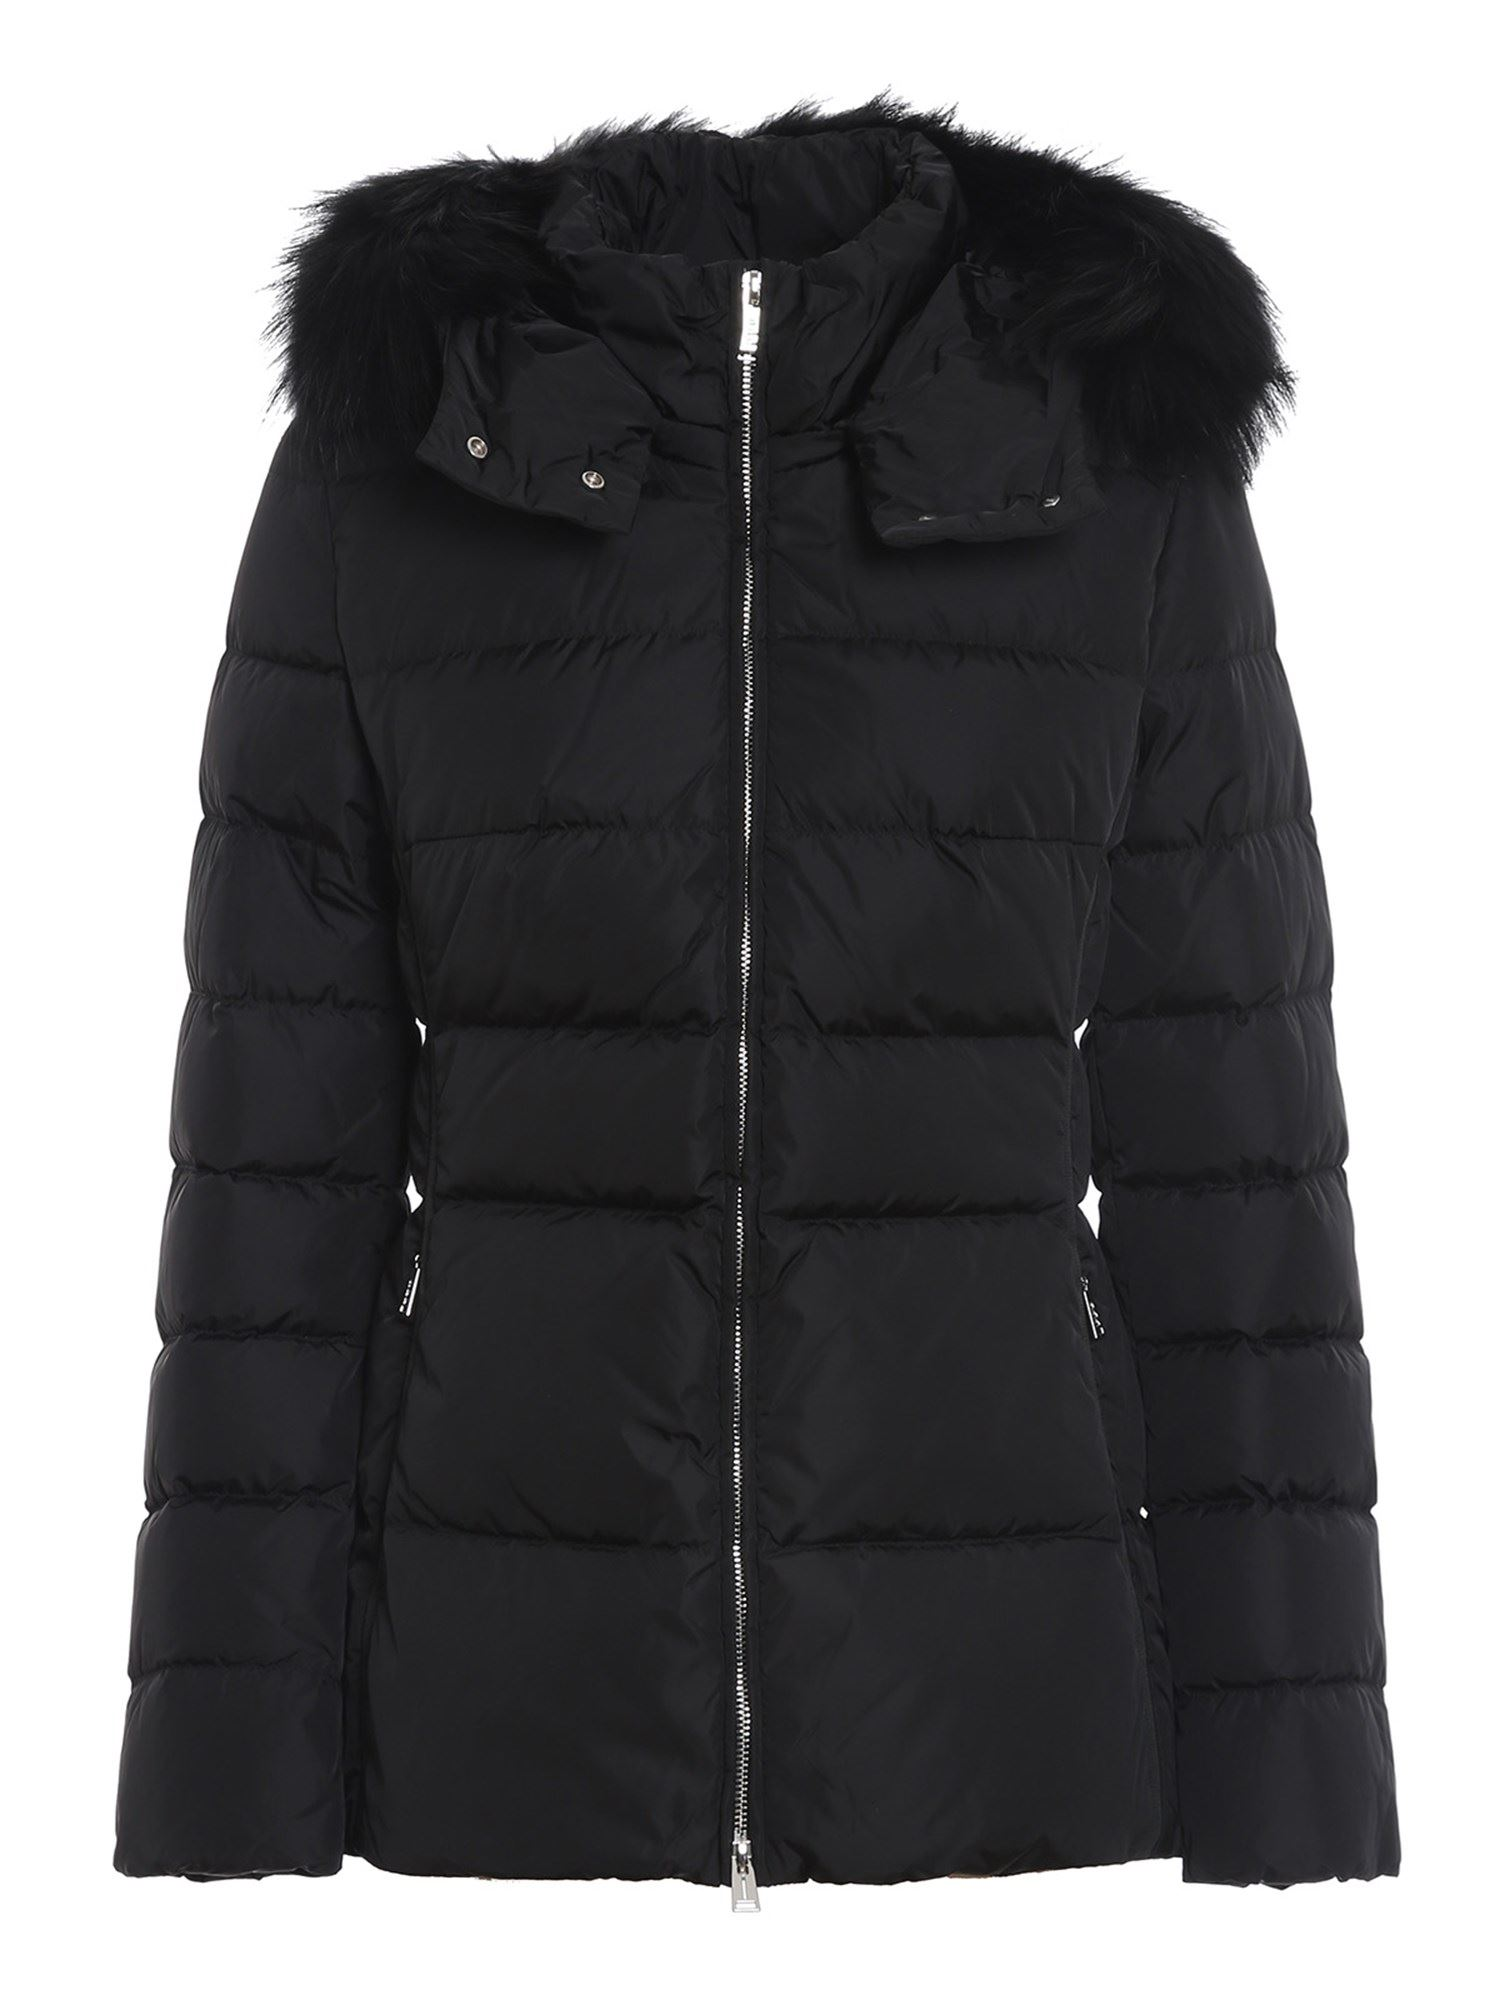 Add Downs ADD BLACK QUILTED SHORT PUFFER JACKET